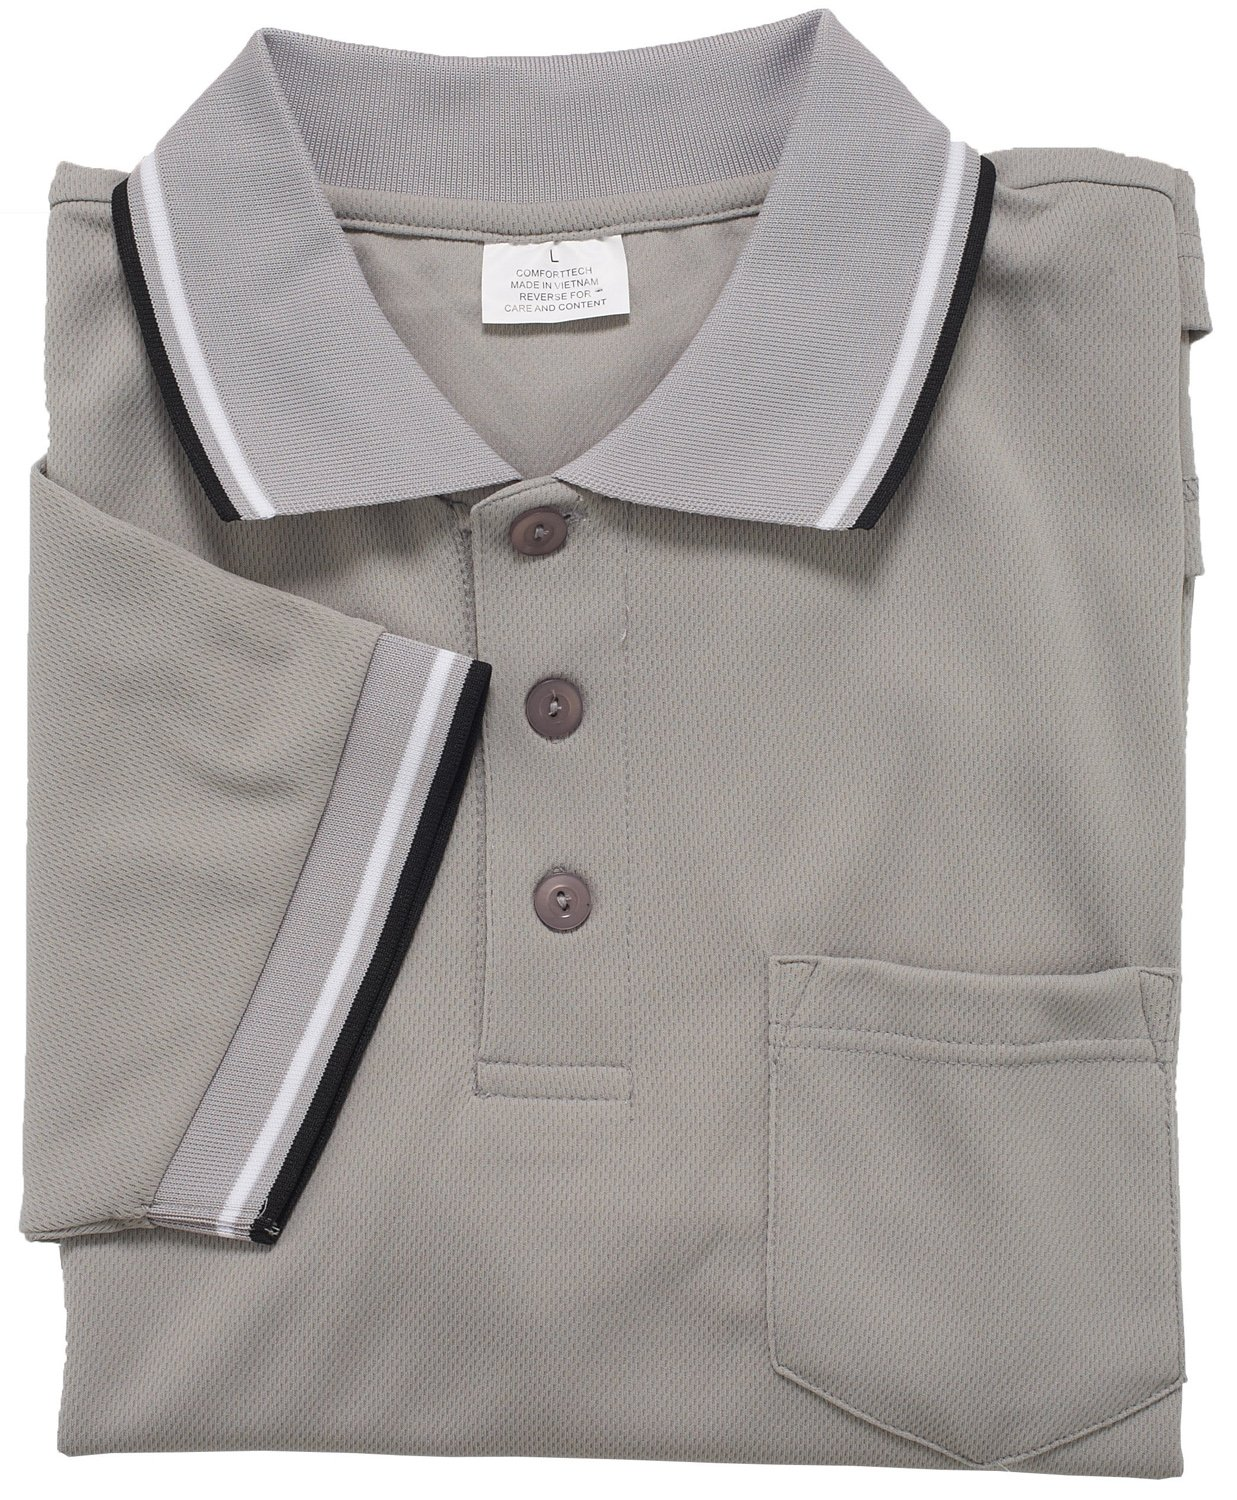 Adams USA Smitty Major League Style Short Sleeve Umpire Shirt with Front Chest Pocket (Gray, 4X-Large)